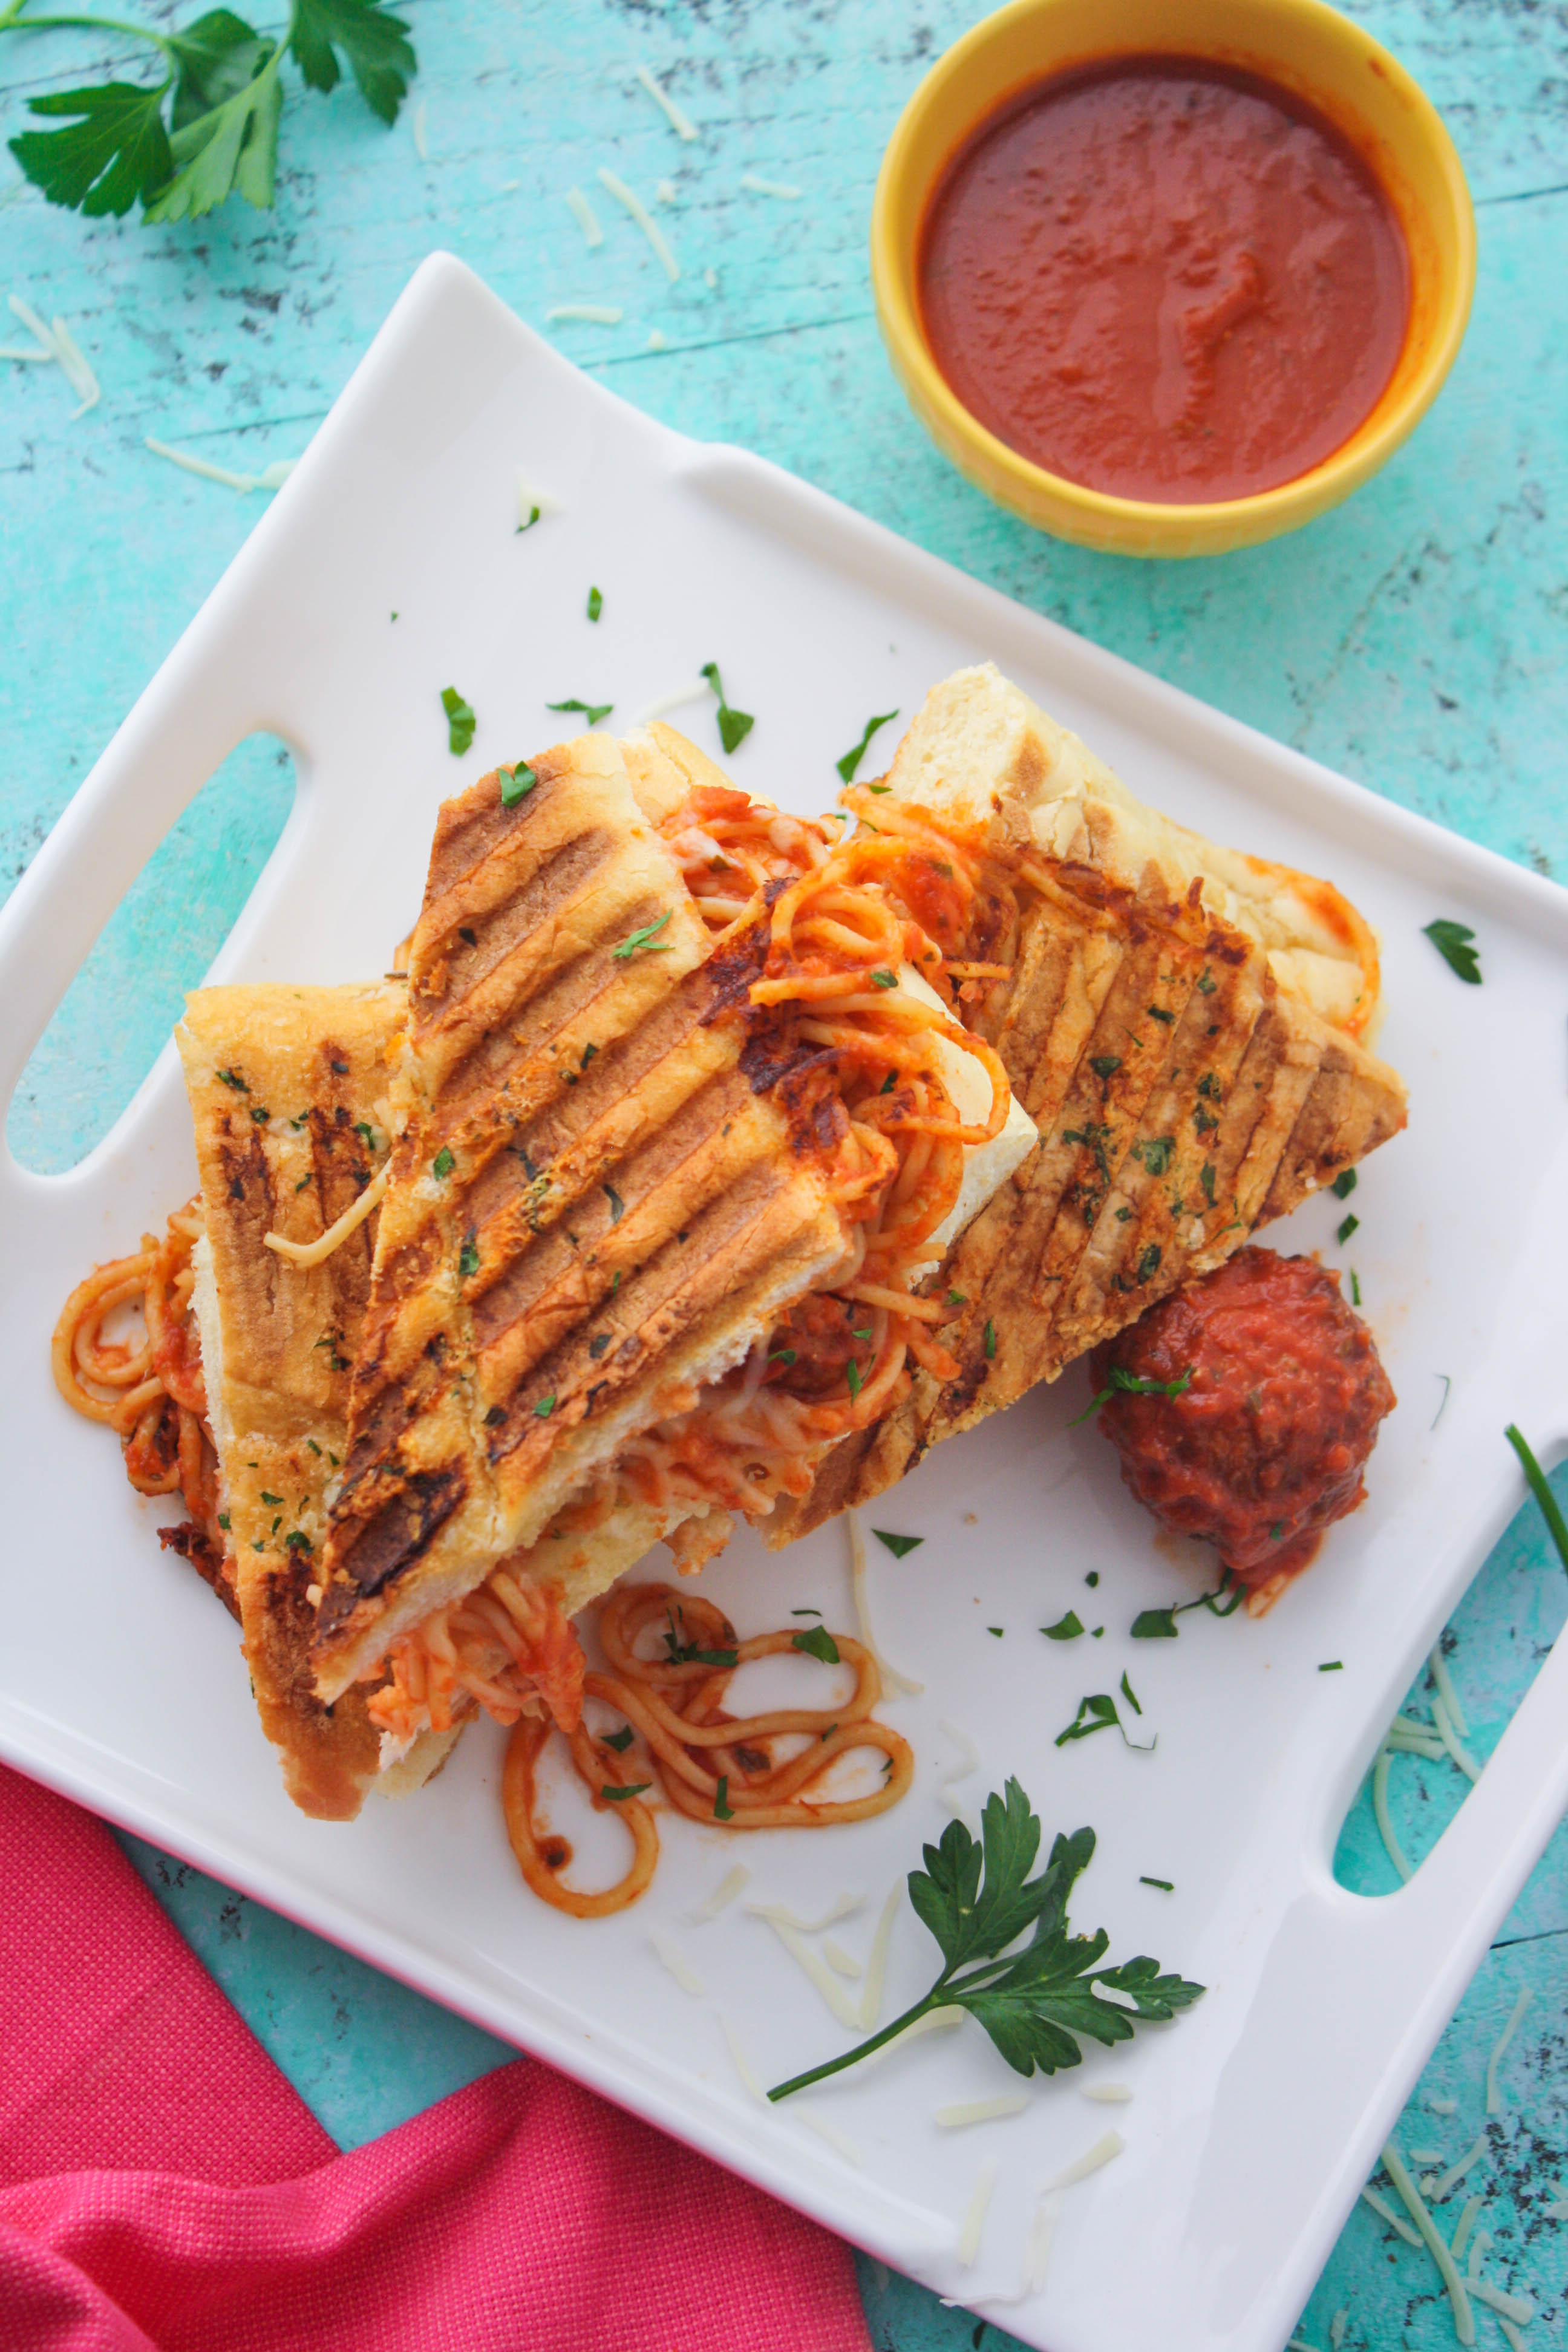 Leftover Spaghetti & Meatball Panini is a fun dish the whole family will enjoy! Leftovers get a fun makeover, for sure!